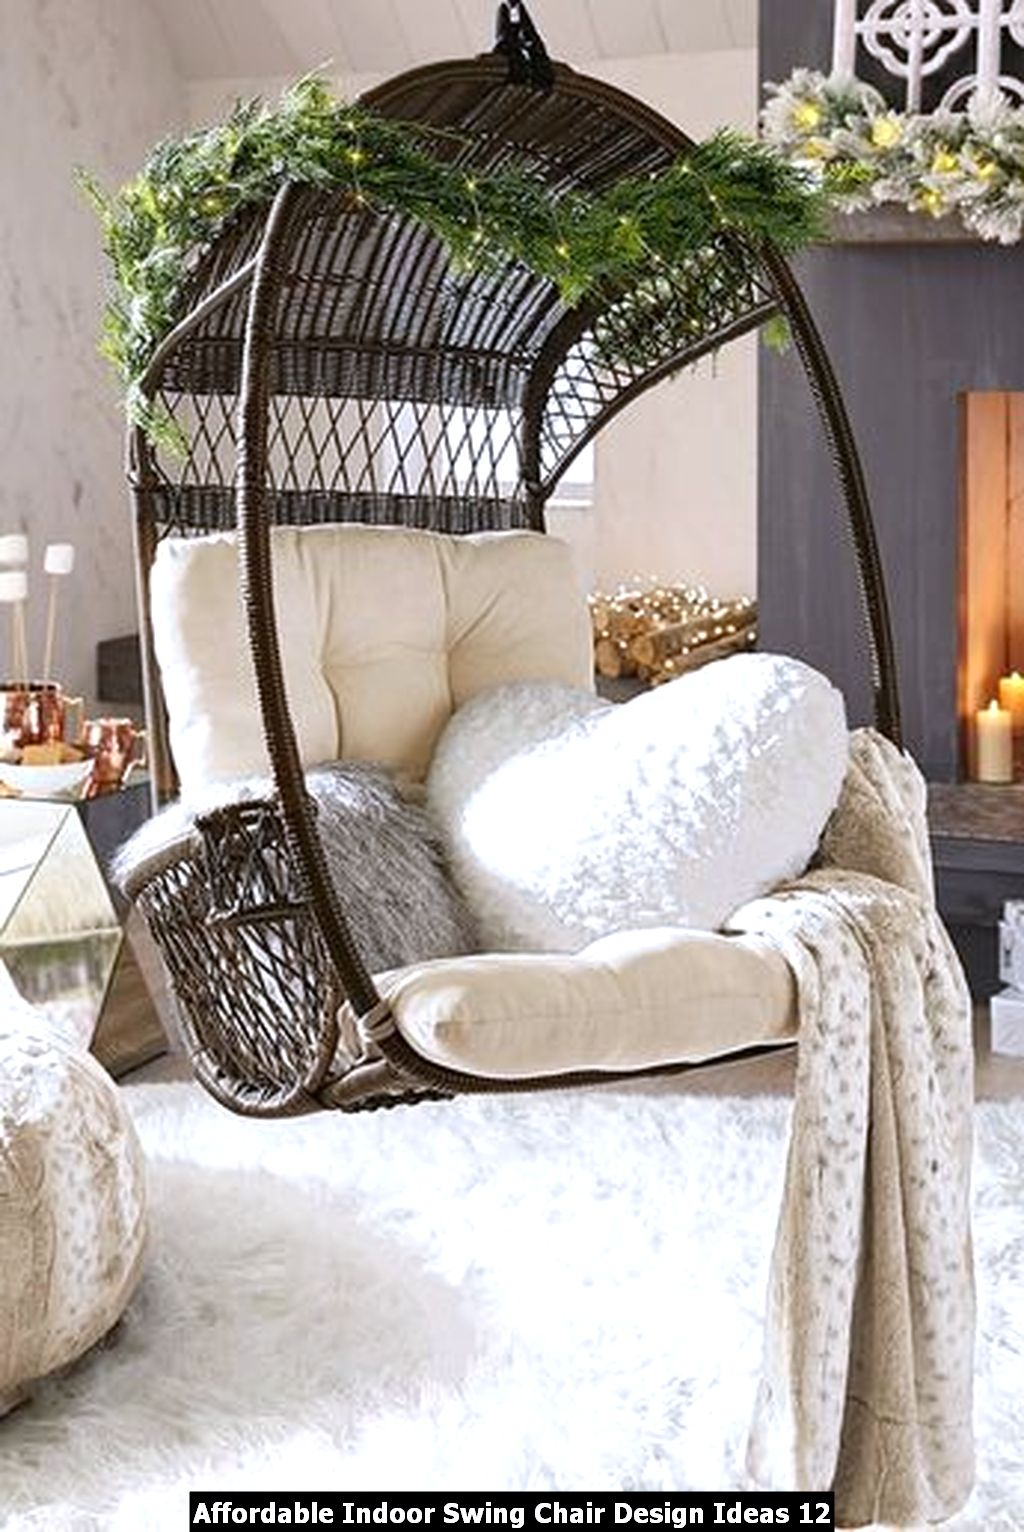 Affordable Indoor Swing Chair Design Ideas 12